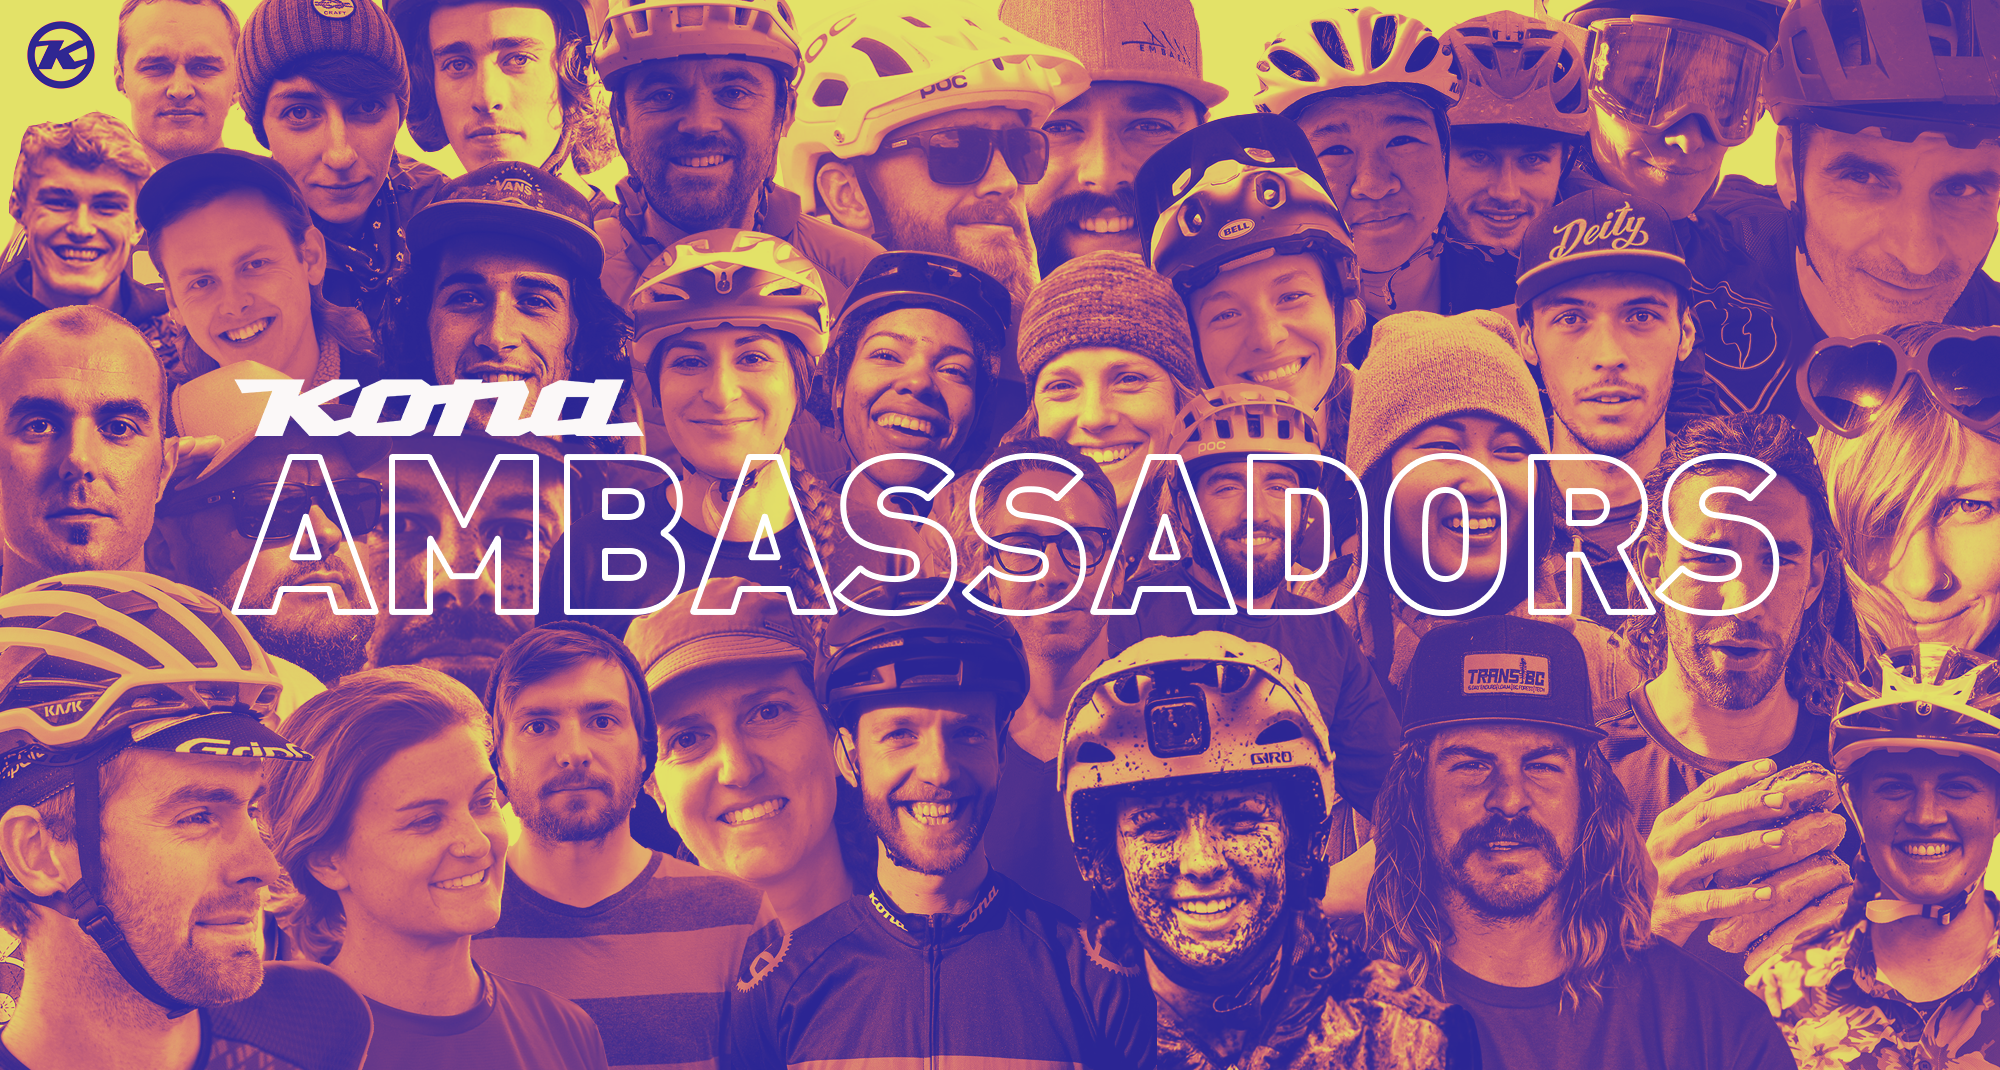 Announcing the Kona Ambassadors!